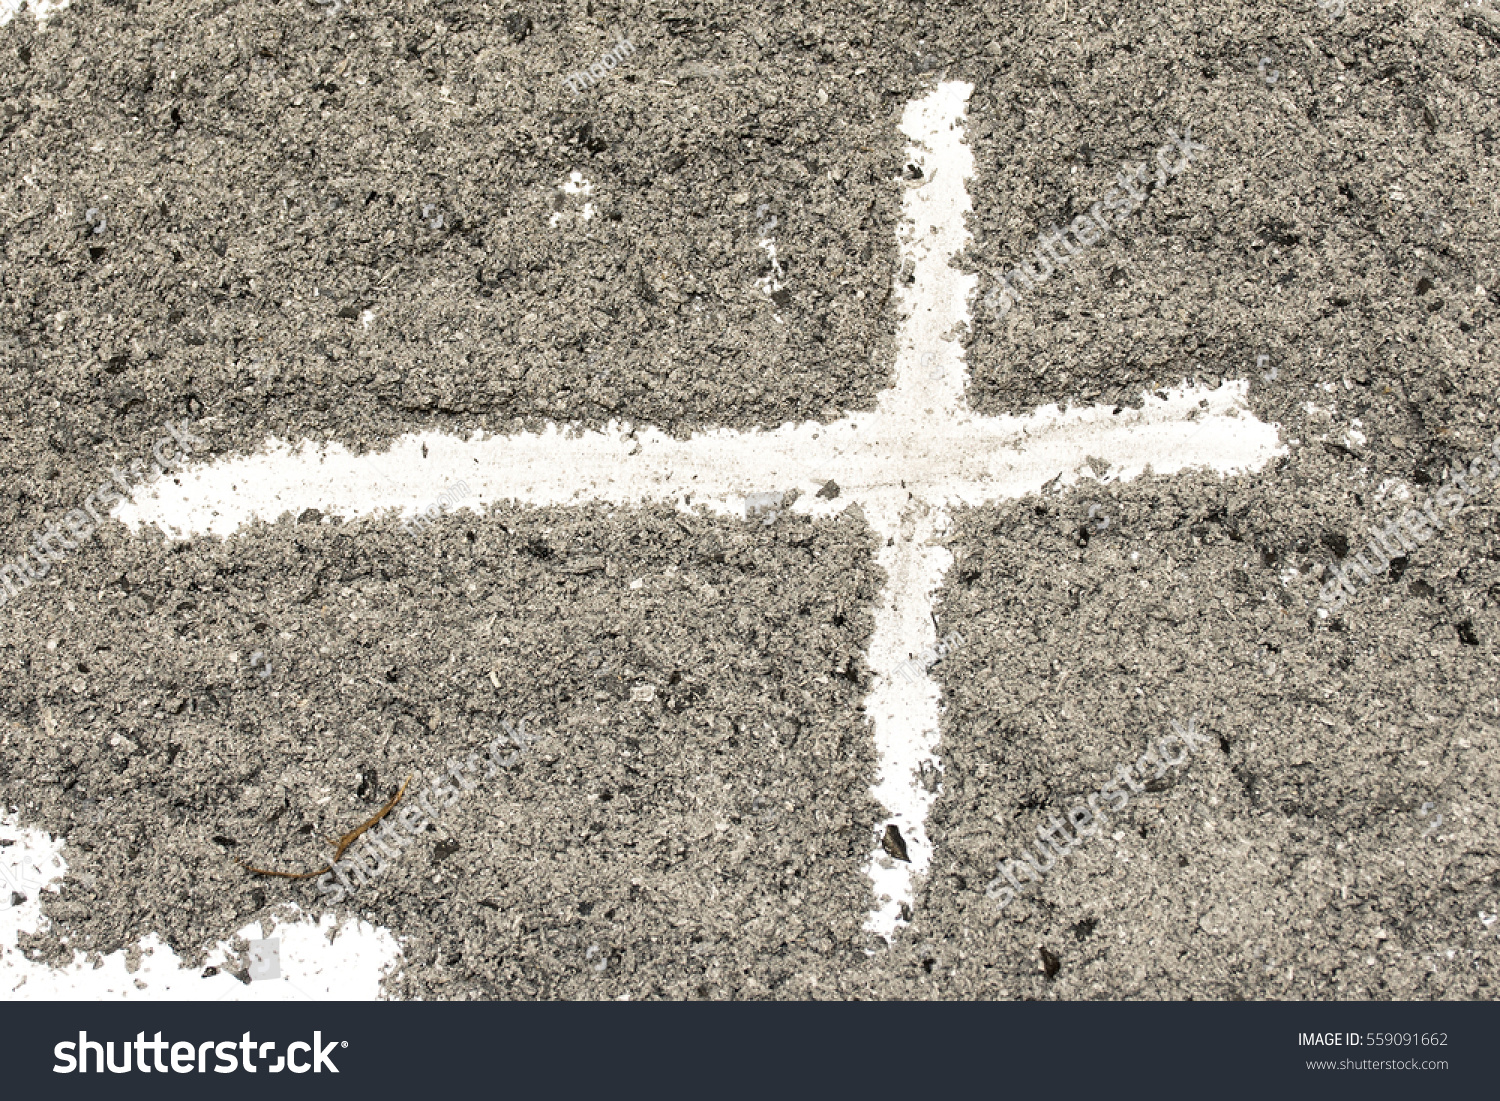 Cross made ashes ash wednesday lent stock photo 559091662 shutterstock cross made in ashes ash wednesday lent season vintage abstract artistic background buycottarizona Image collections